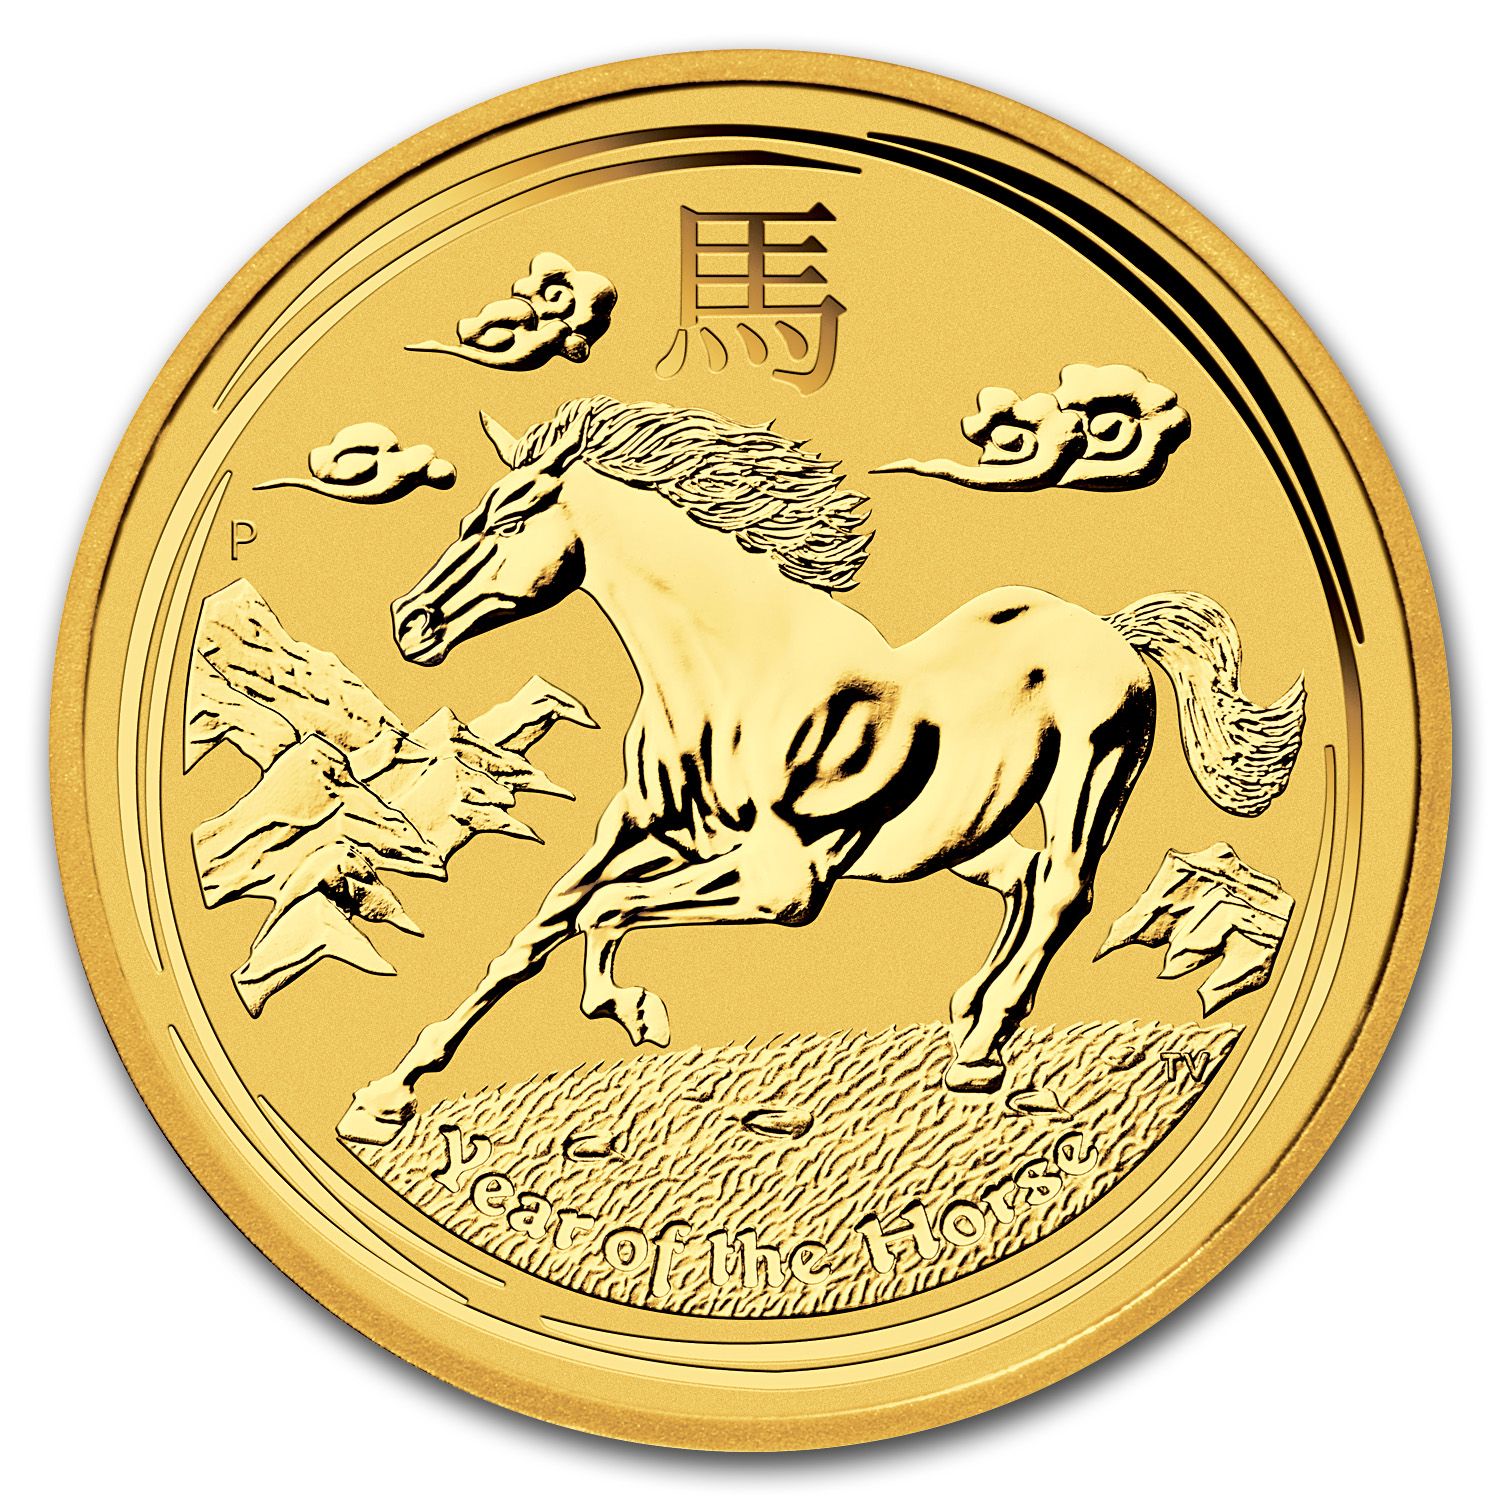 2014 2 oz Gold Lunar Year of the Horse (Series II)